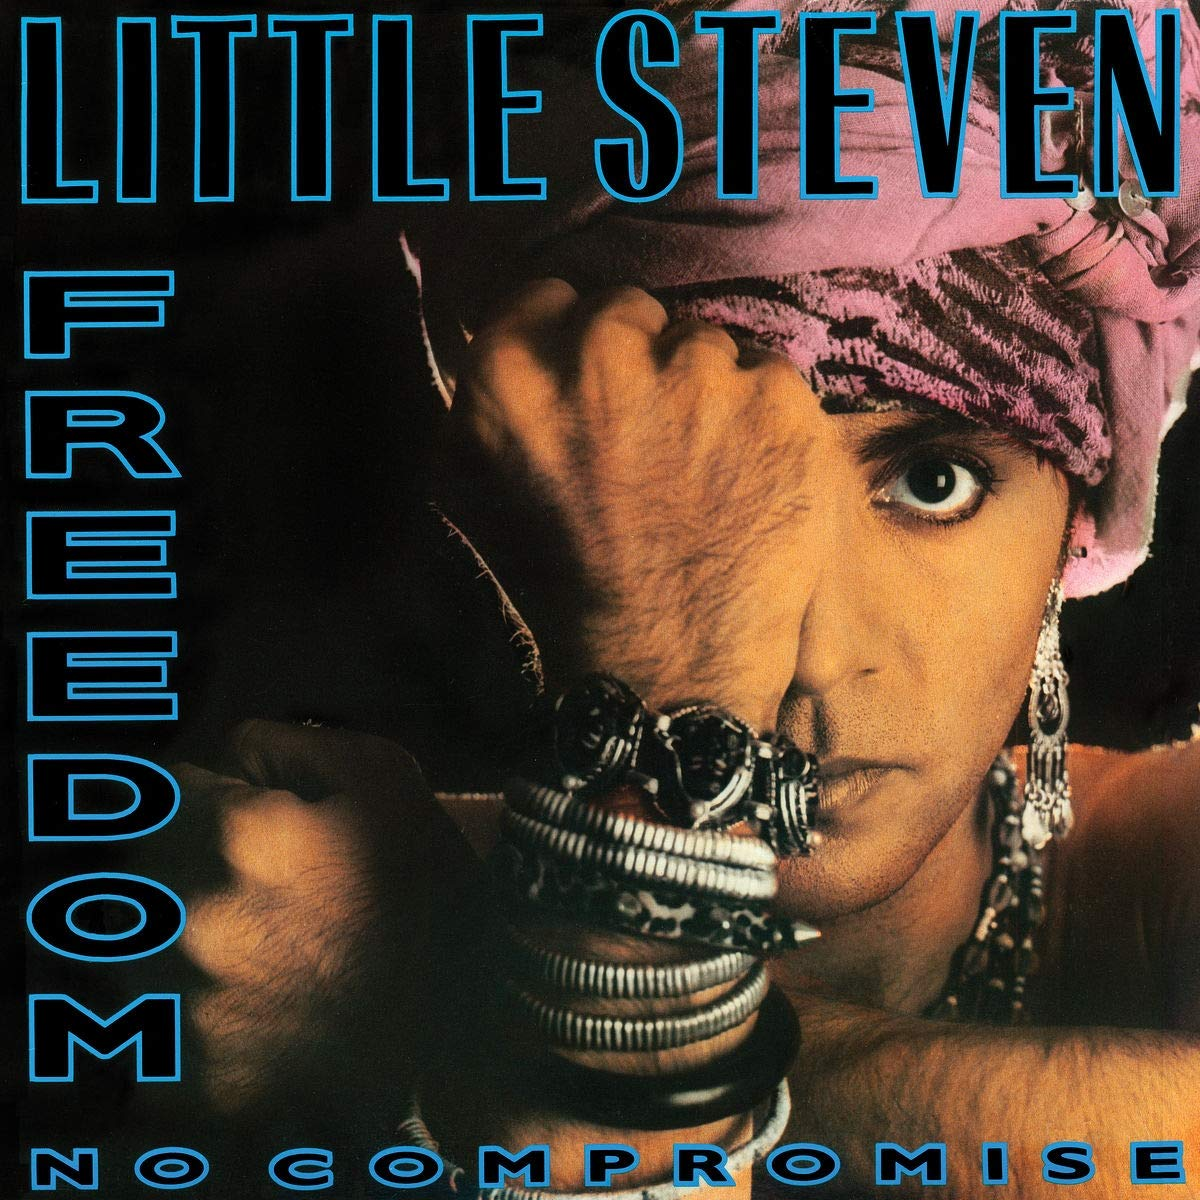 Little Steven - Freedom No Compromise (2020) [FLAC] Download